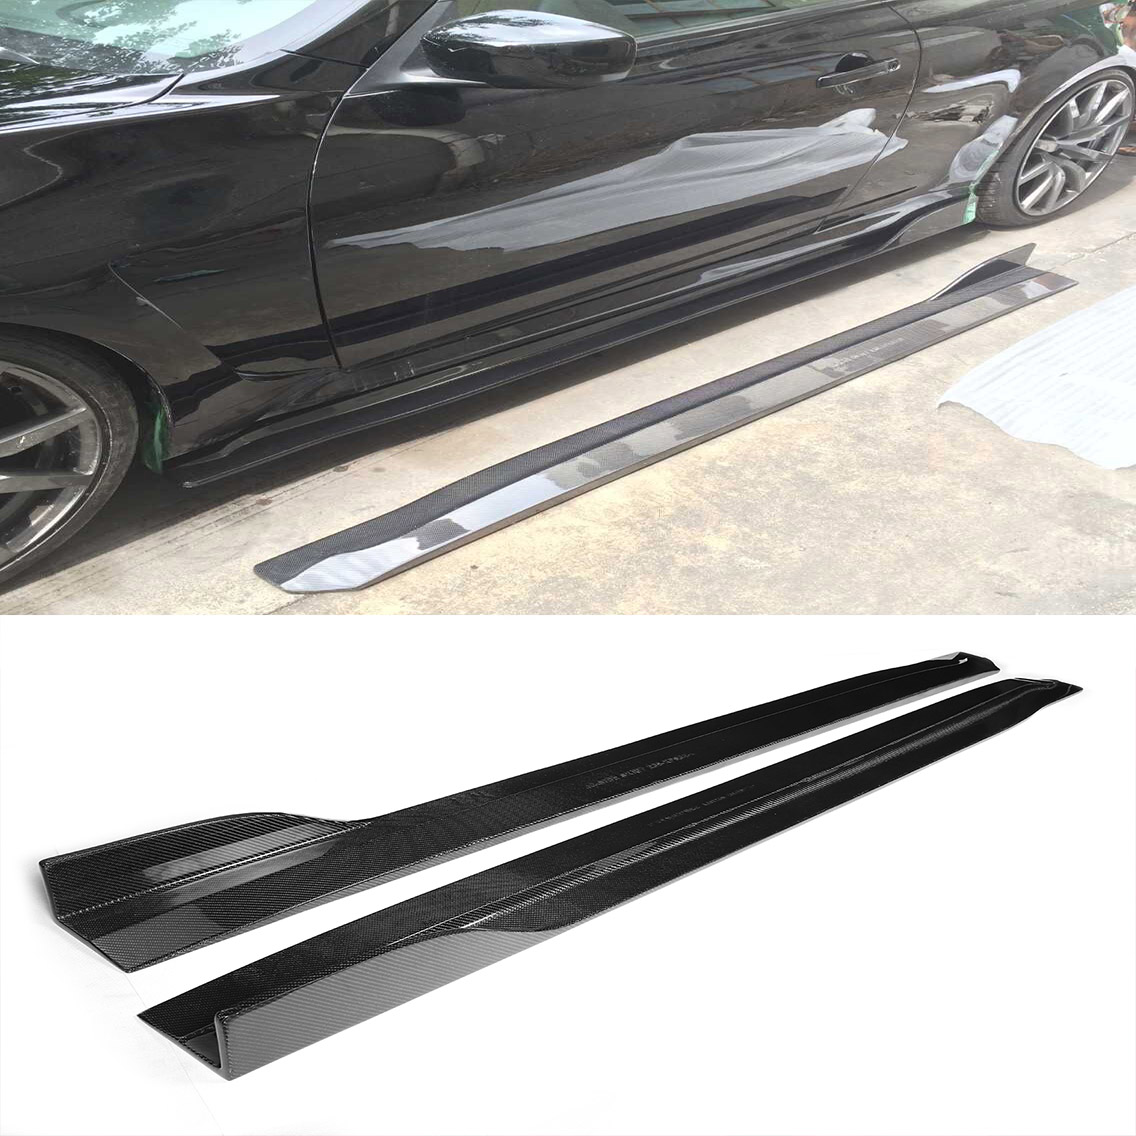 Carbon Fiber G37 Jc Styling Auto Side Skirts For Infiniti